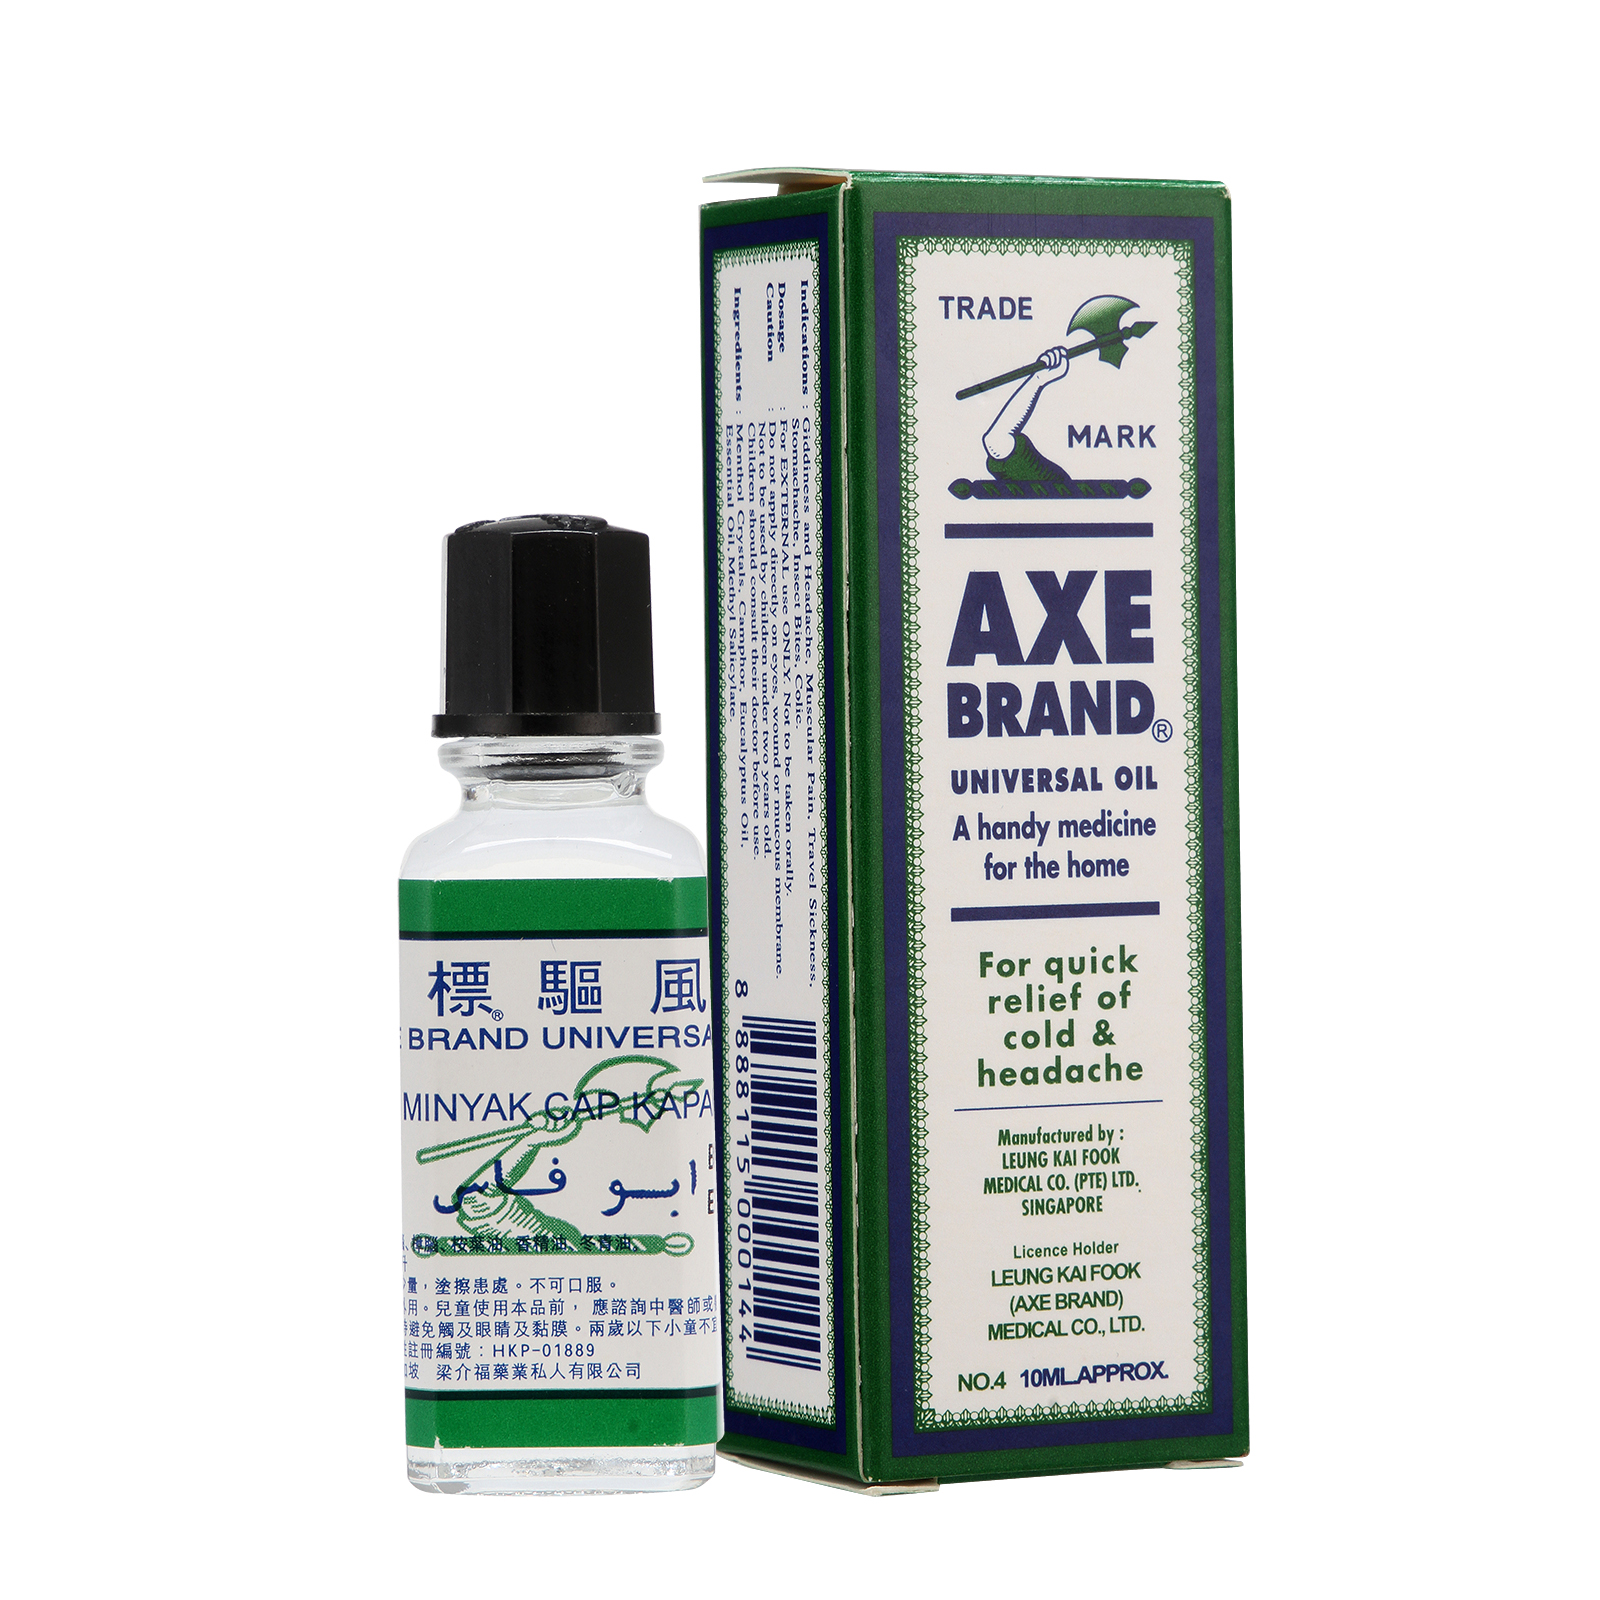 AXE BRAND Universal Oil Home First Aid Headache Pain Insect Bites Colic Relief 10/28/56ml choose image